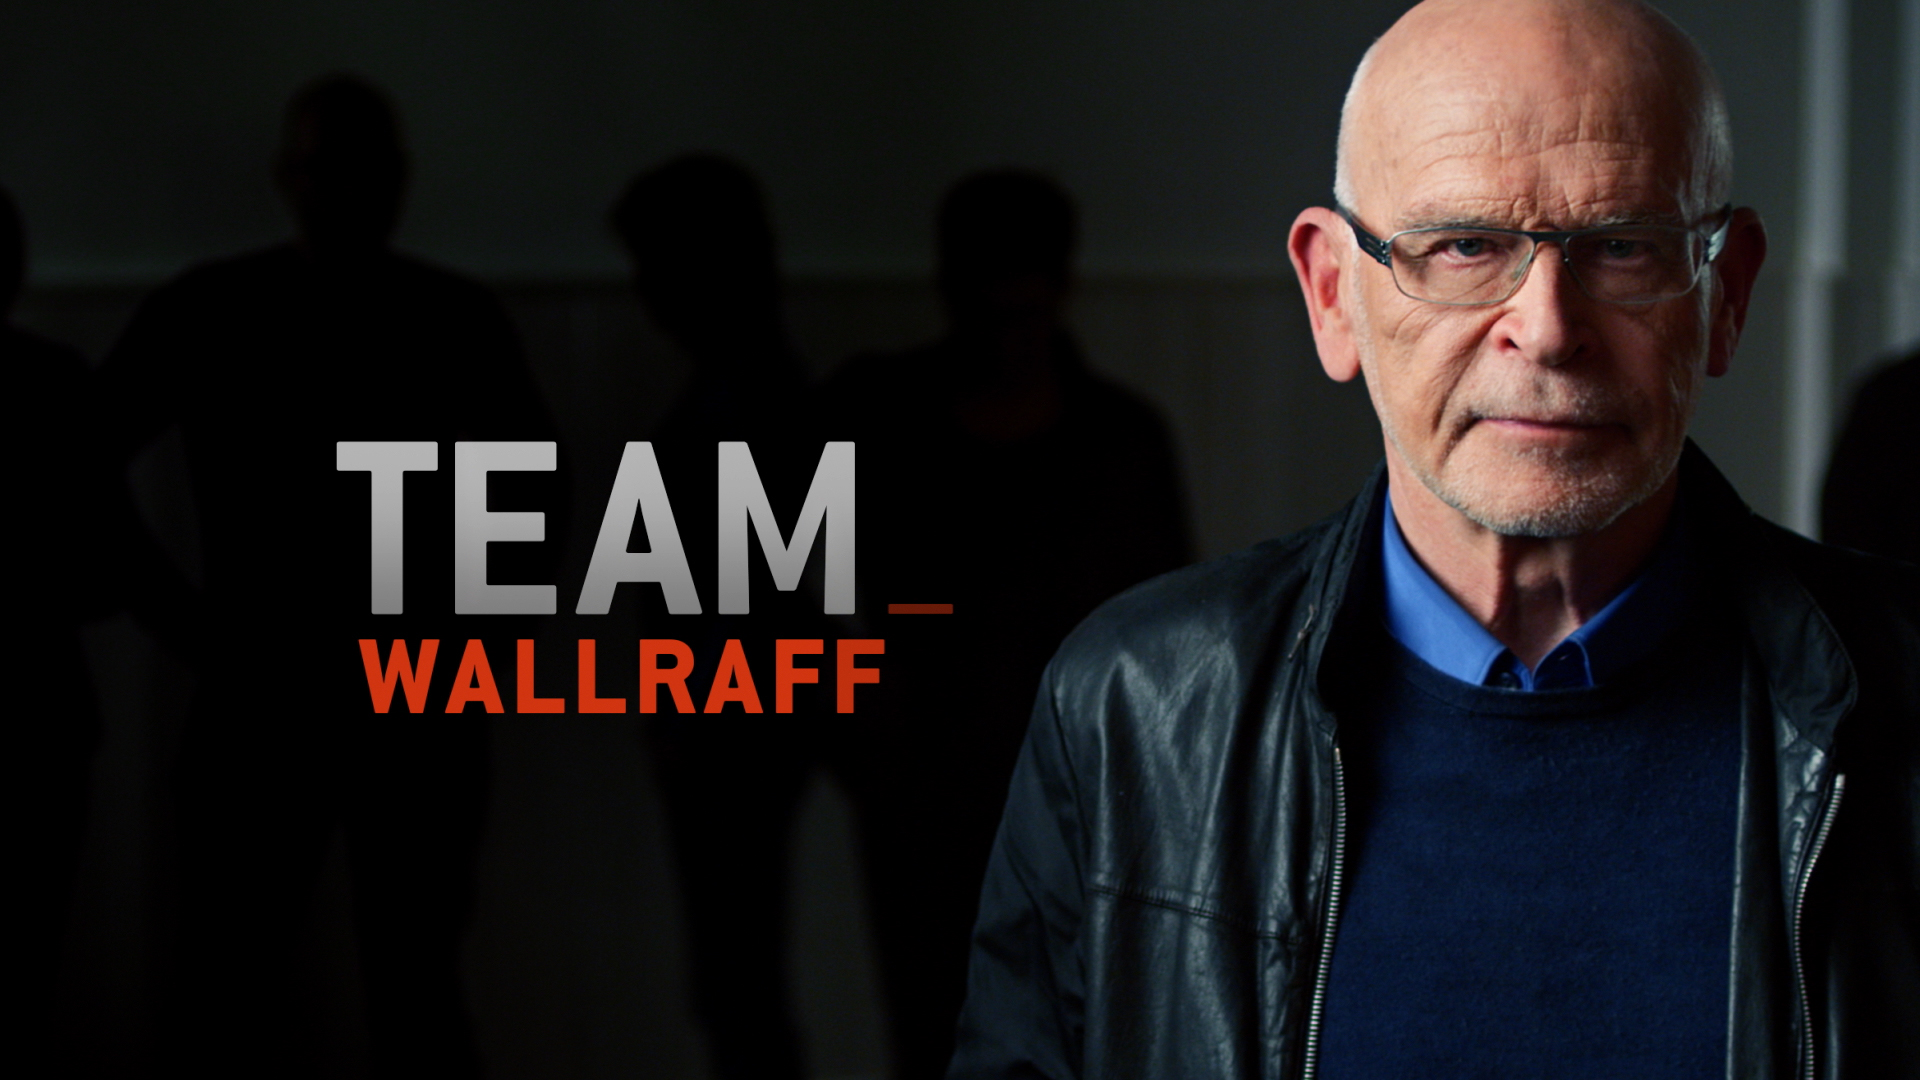 Rtl Team Wallraff